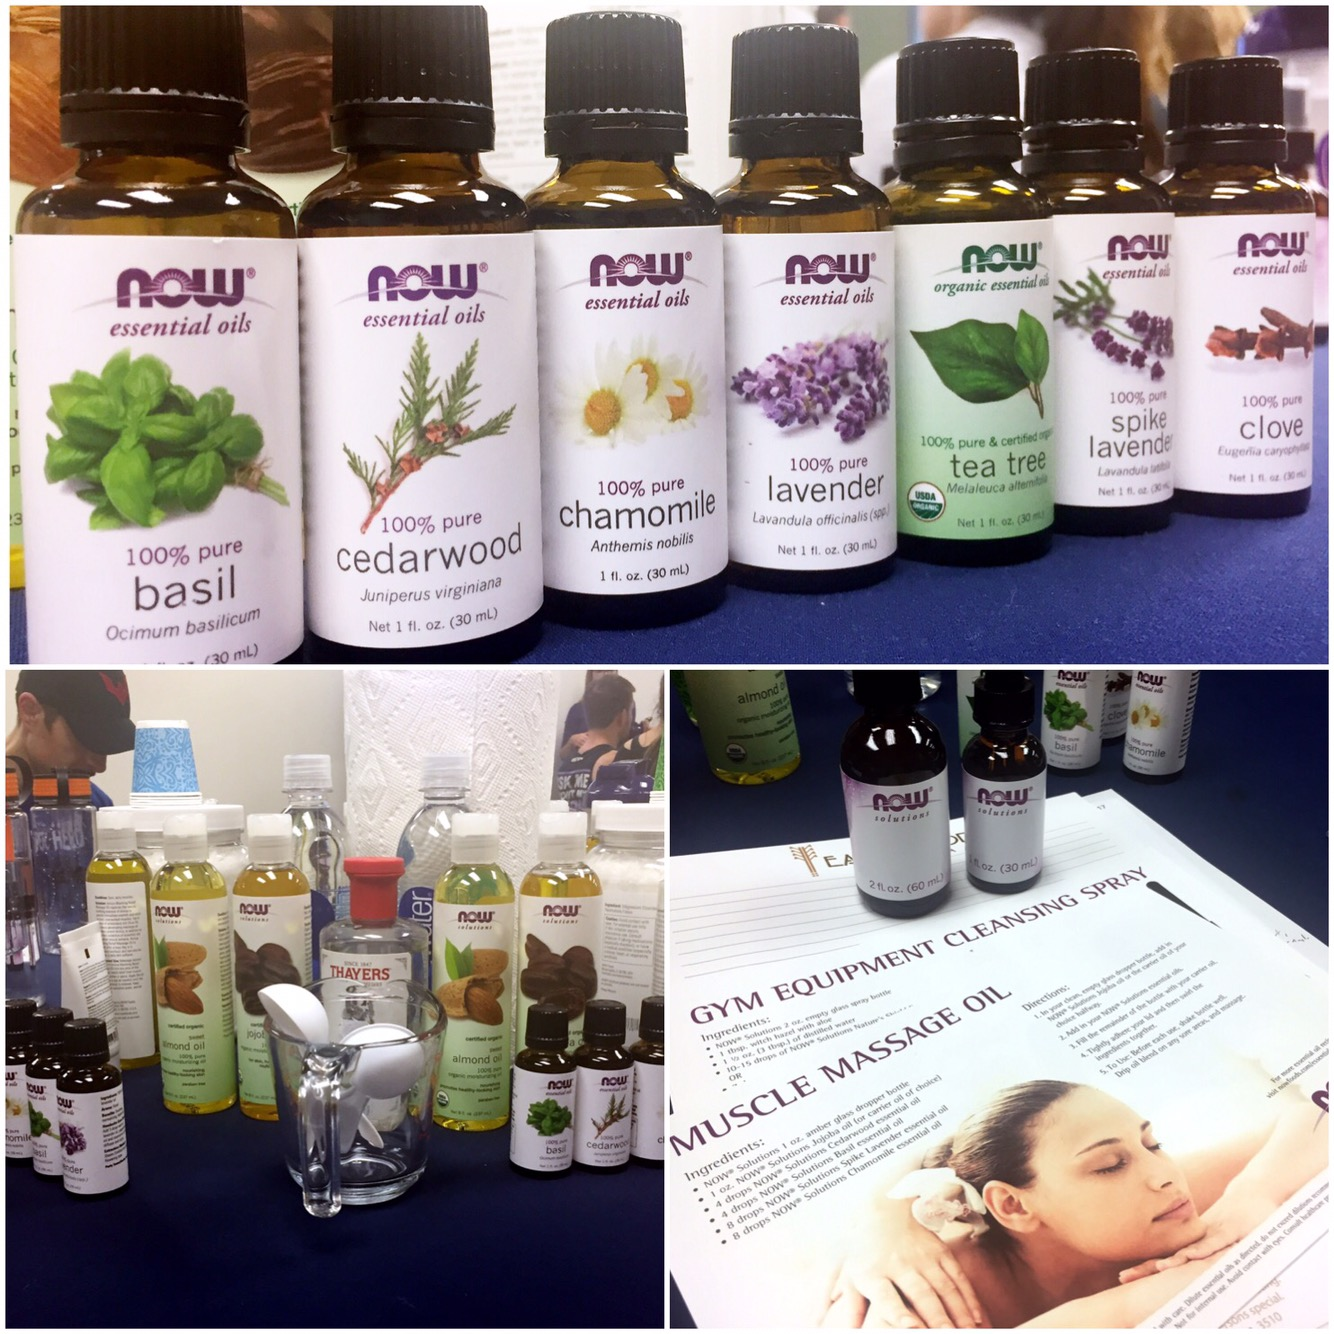 Now Essential Oils and NOW Brand Beauty Products